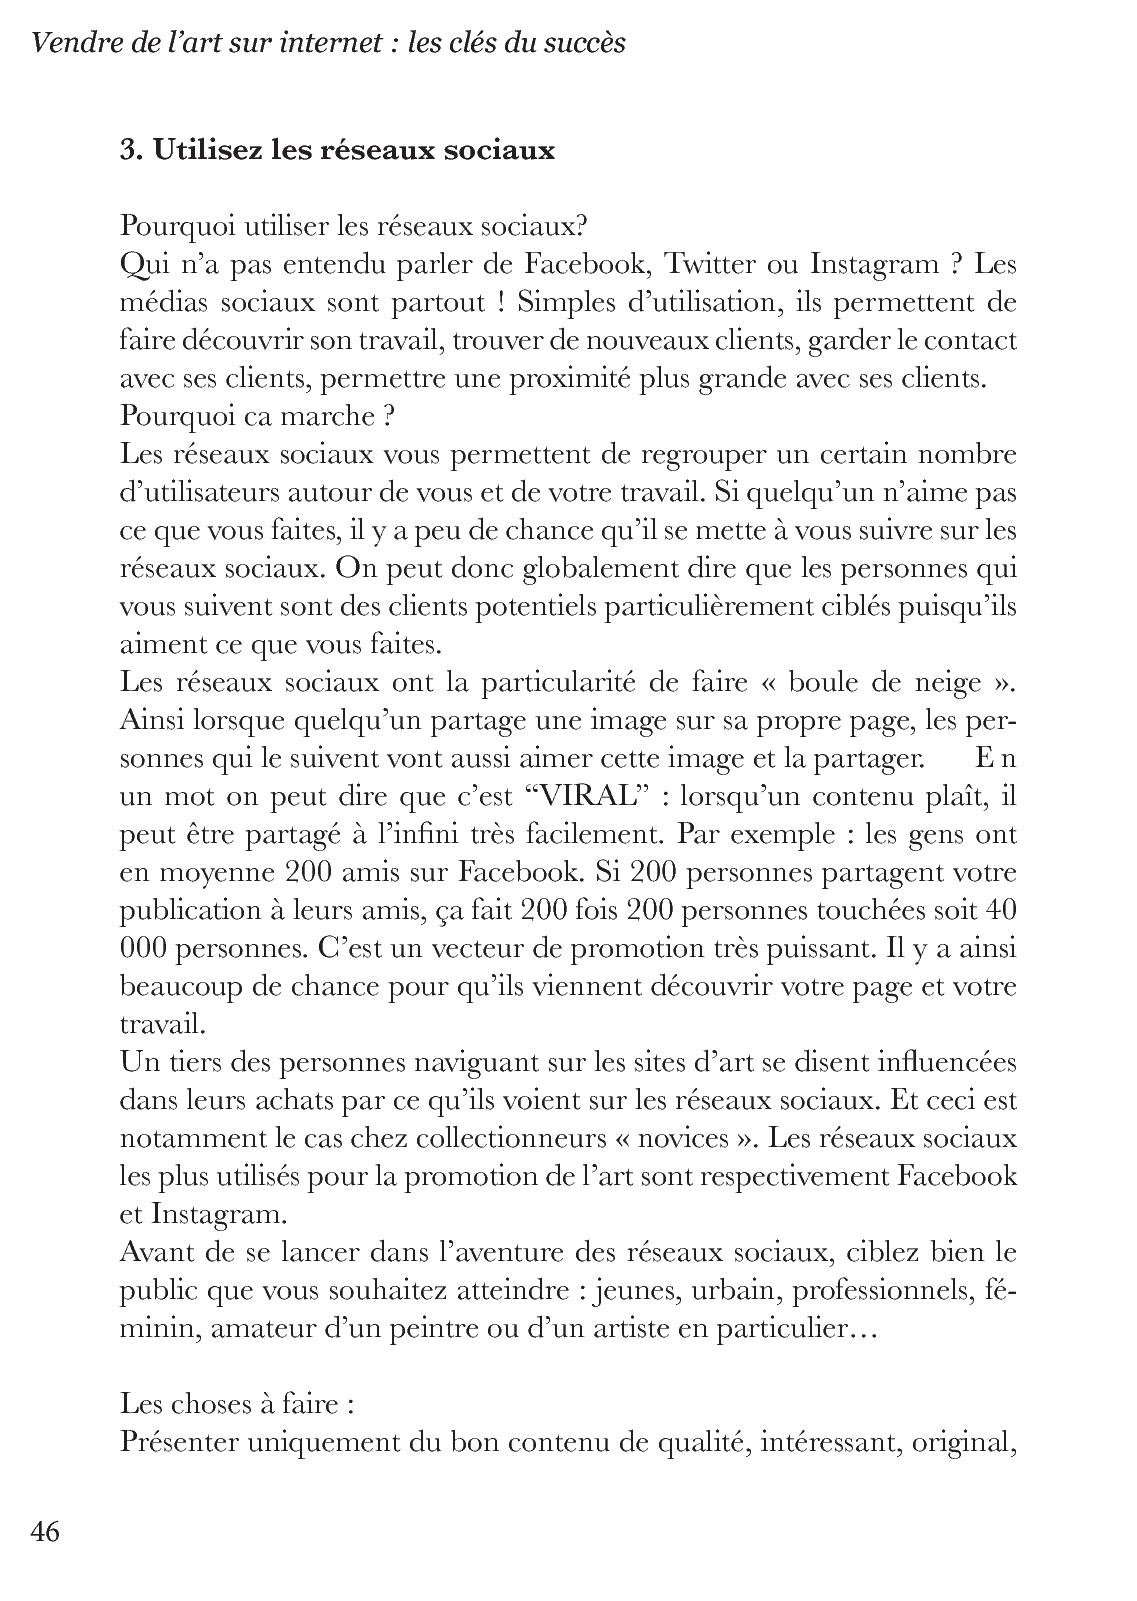 Page 46